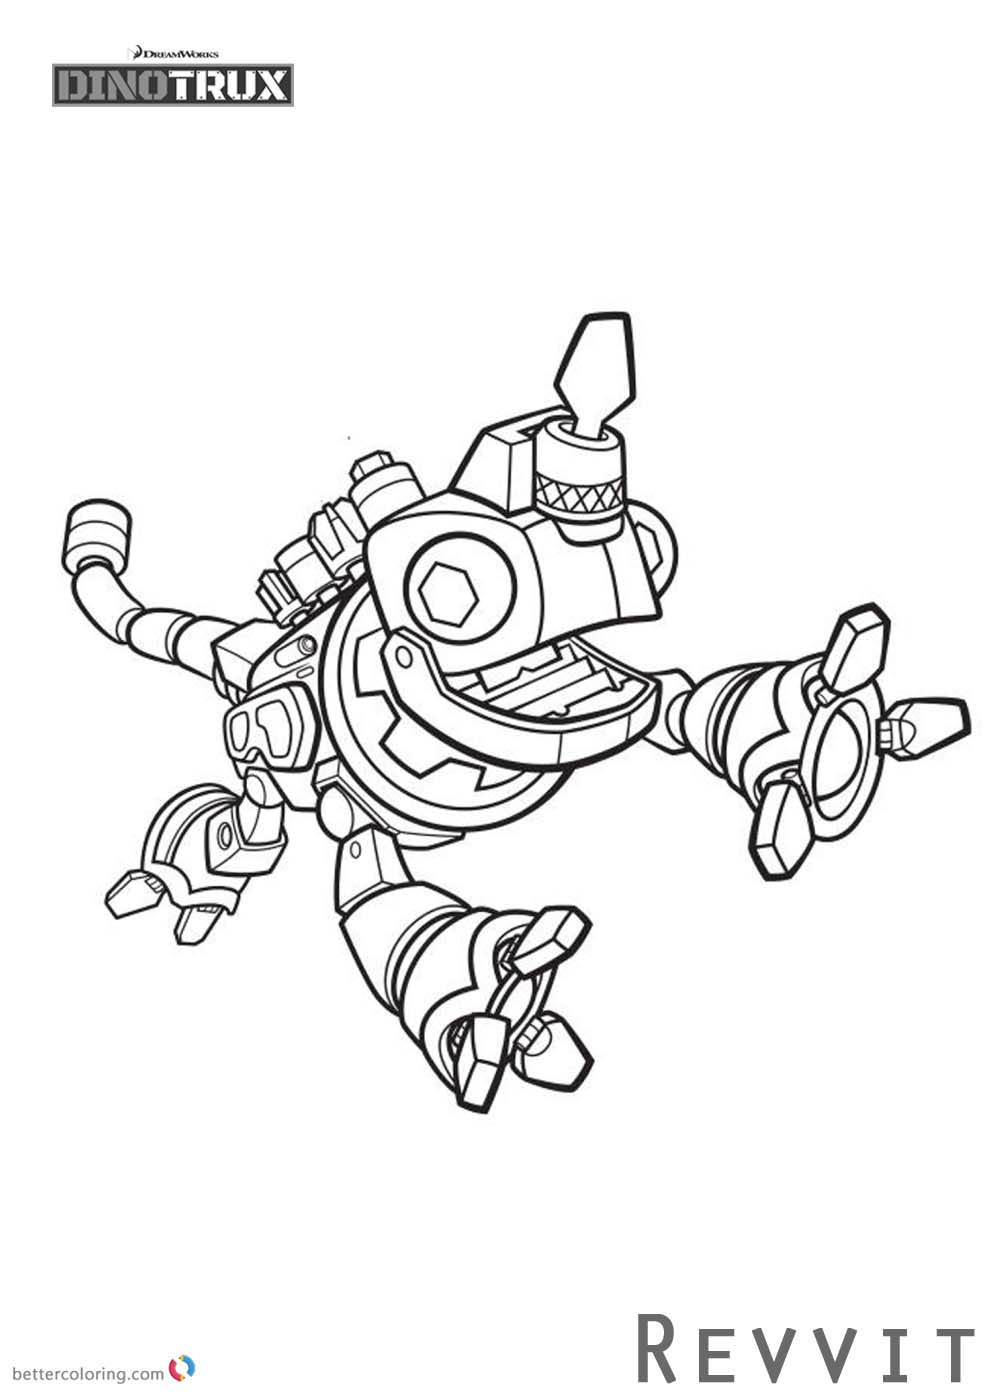 Dinotrux coloring pages Revvit